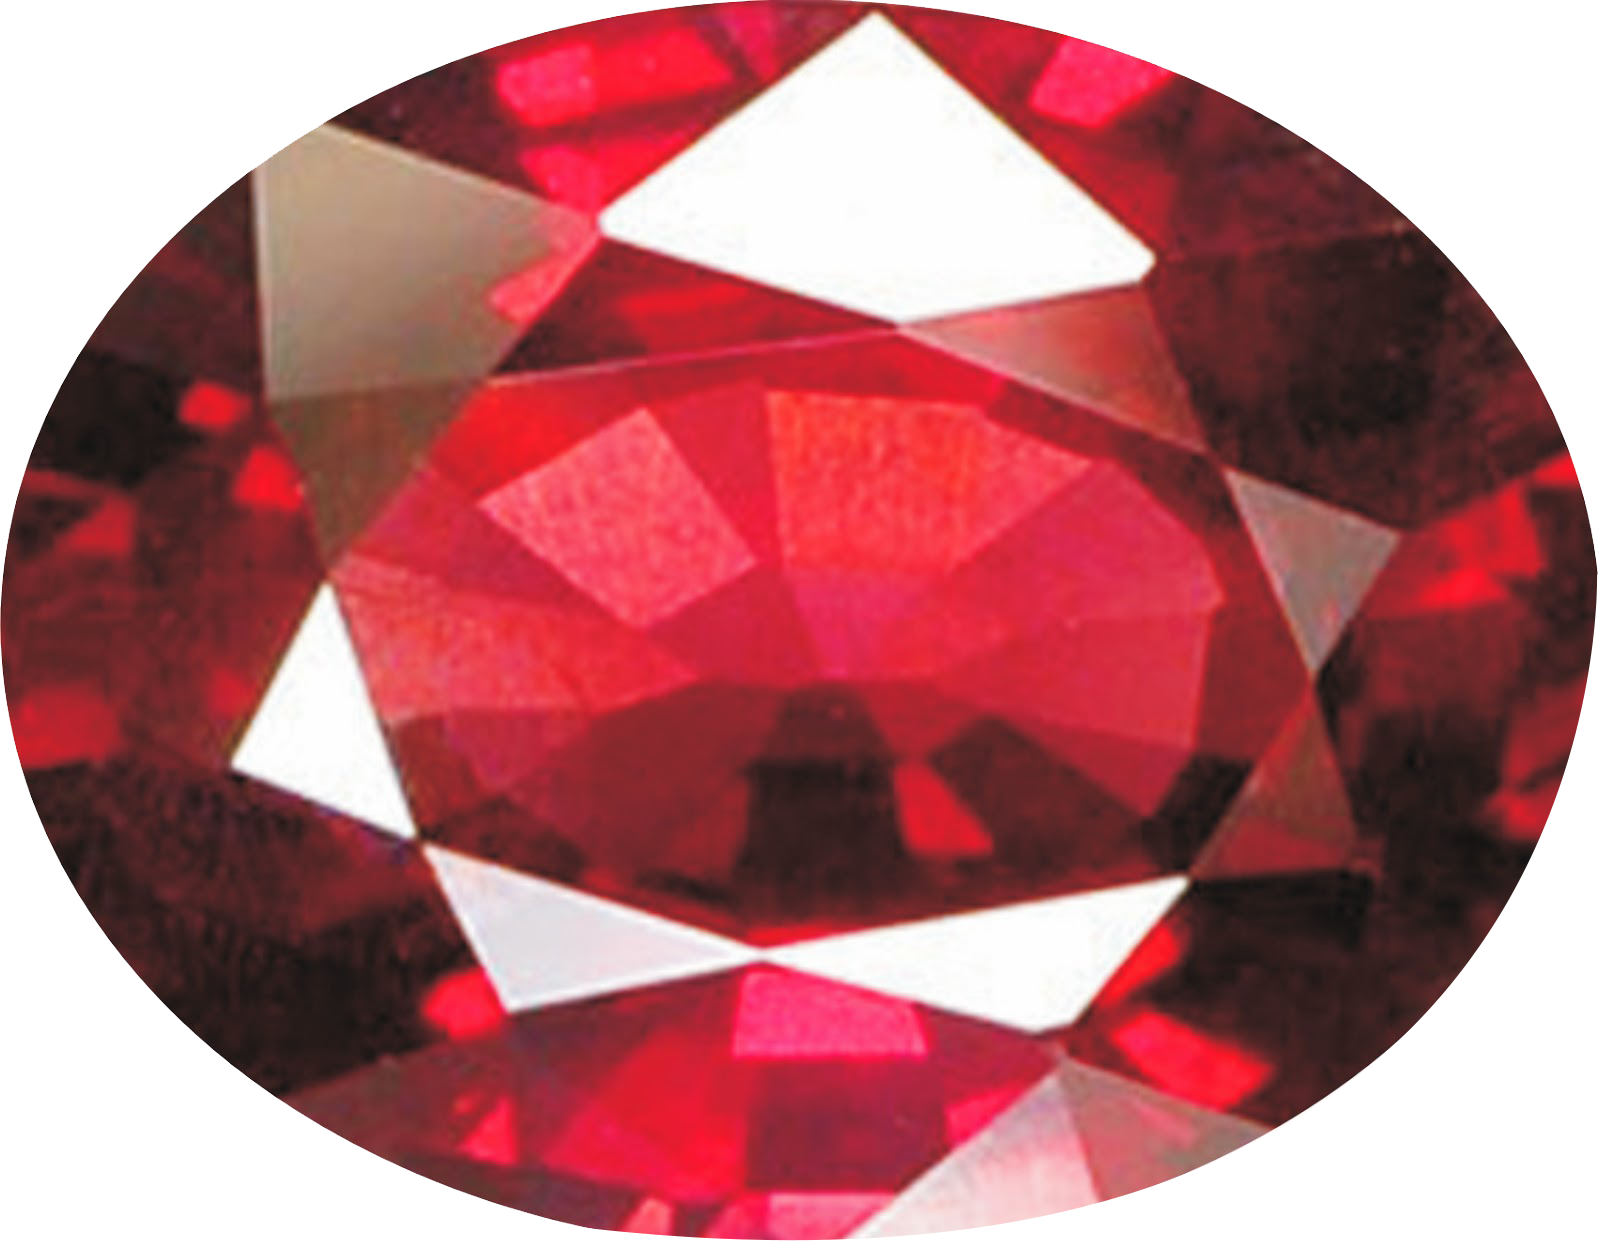 Diamond clipart ruby. Stone png transparent image